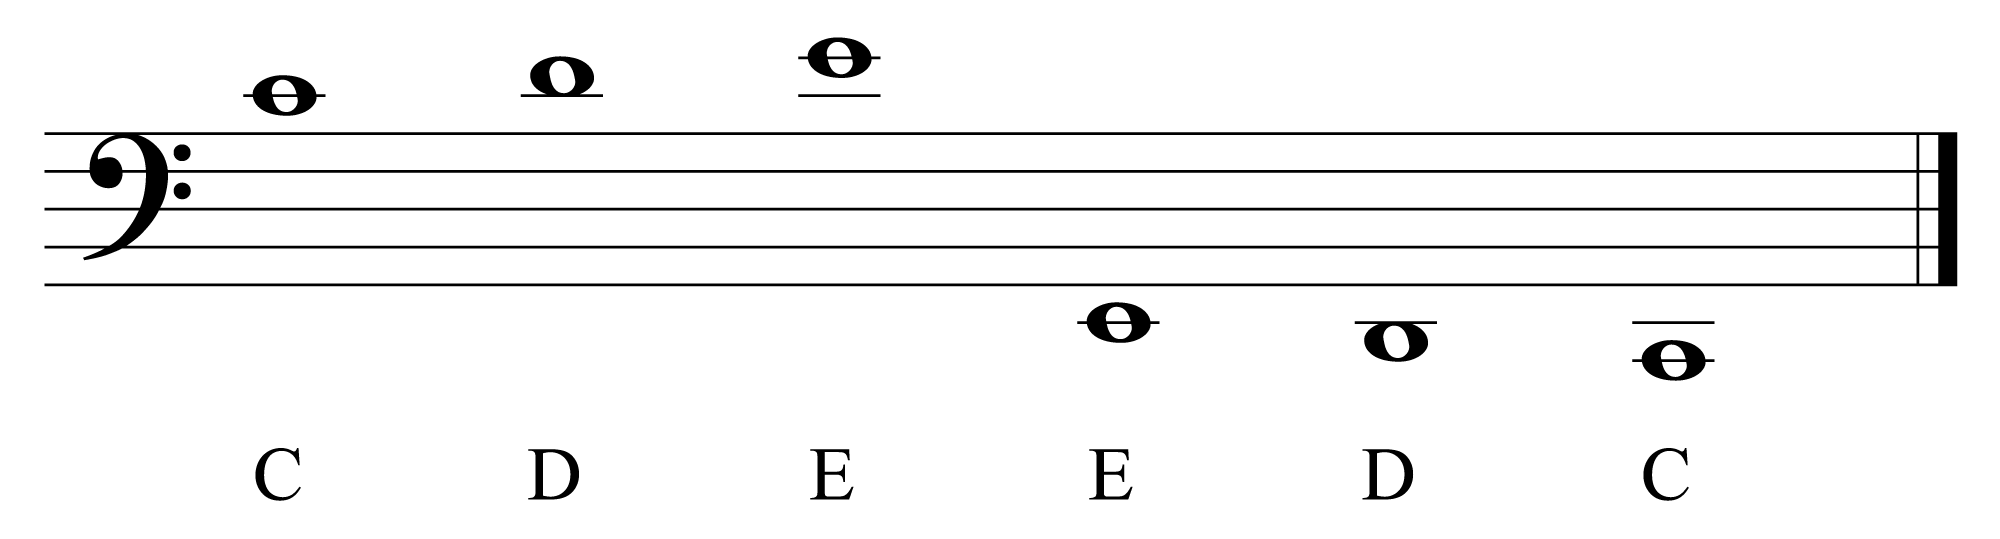 315 musical notation digital sound music figure 314 placing notes above or below the bass clef staff biocorpaavc Image collections